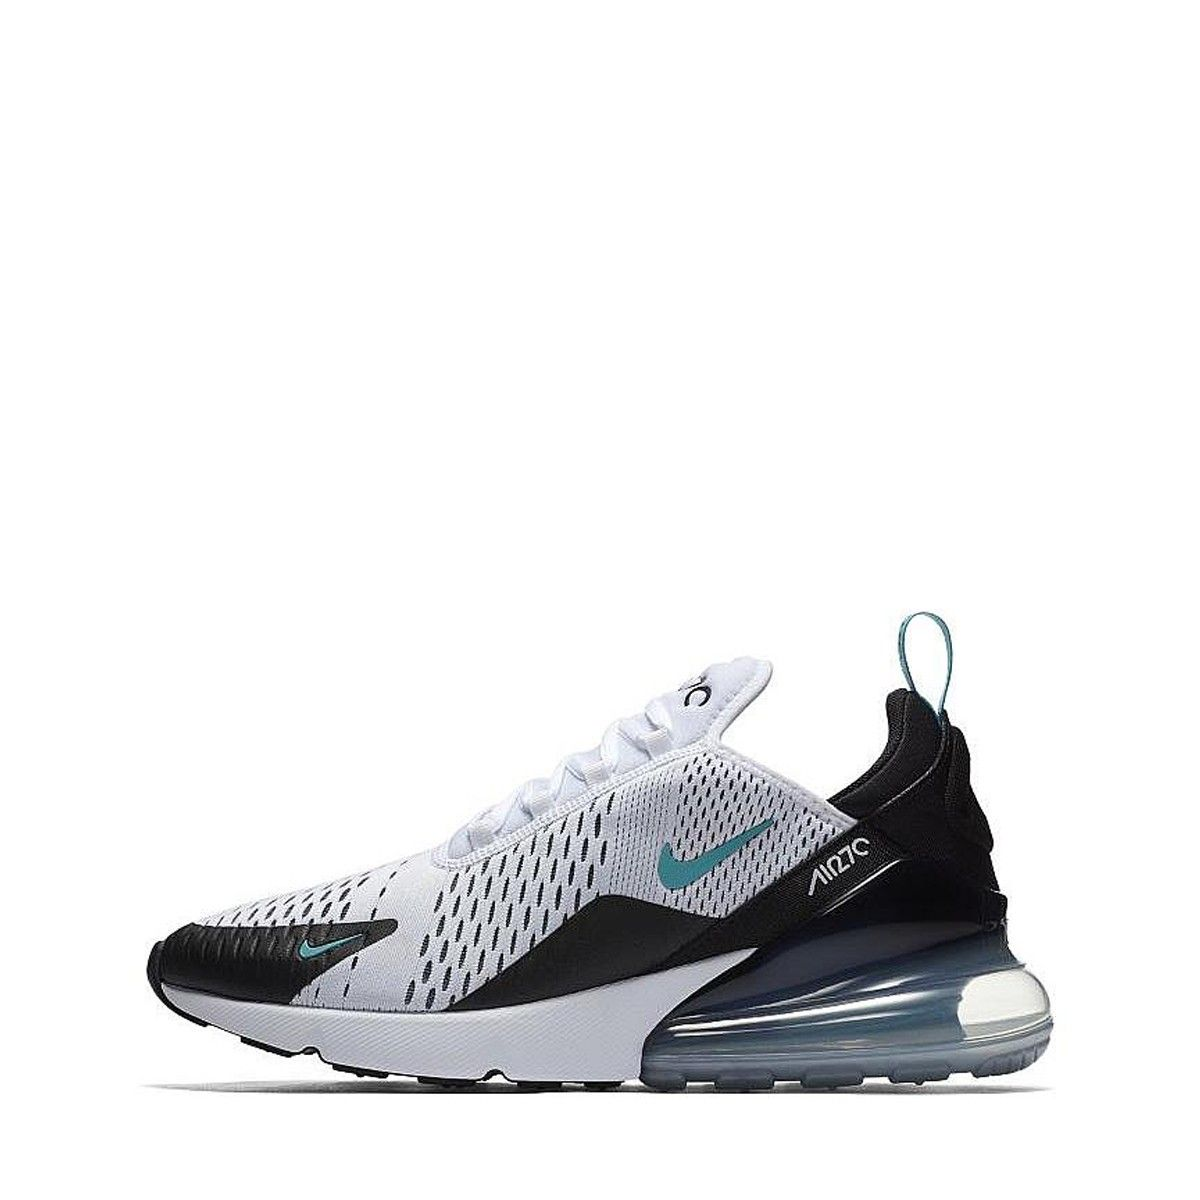 new product 8518e 2c56f Baskets Nike AIR MAX 270 - Ref. AH8050-001. Loading zoom